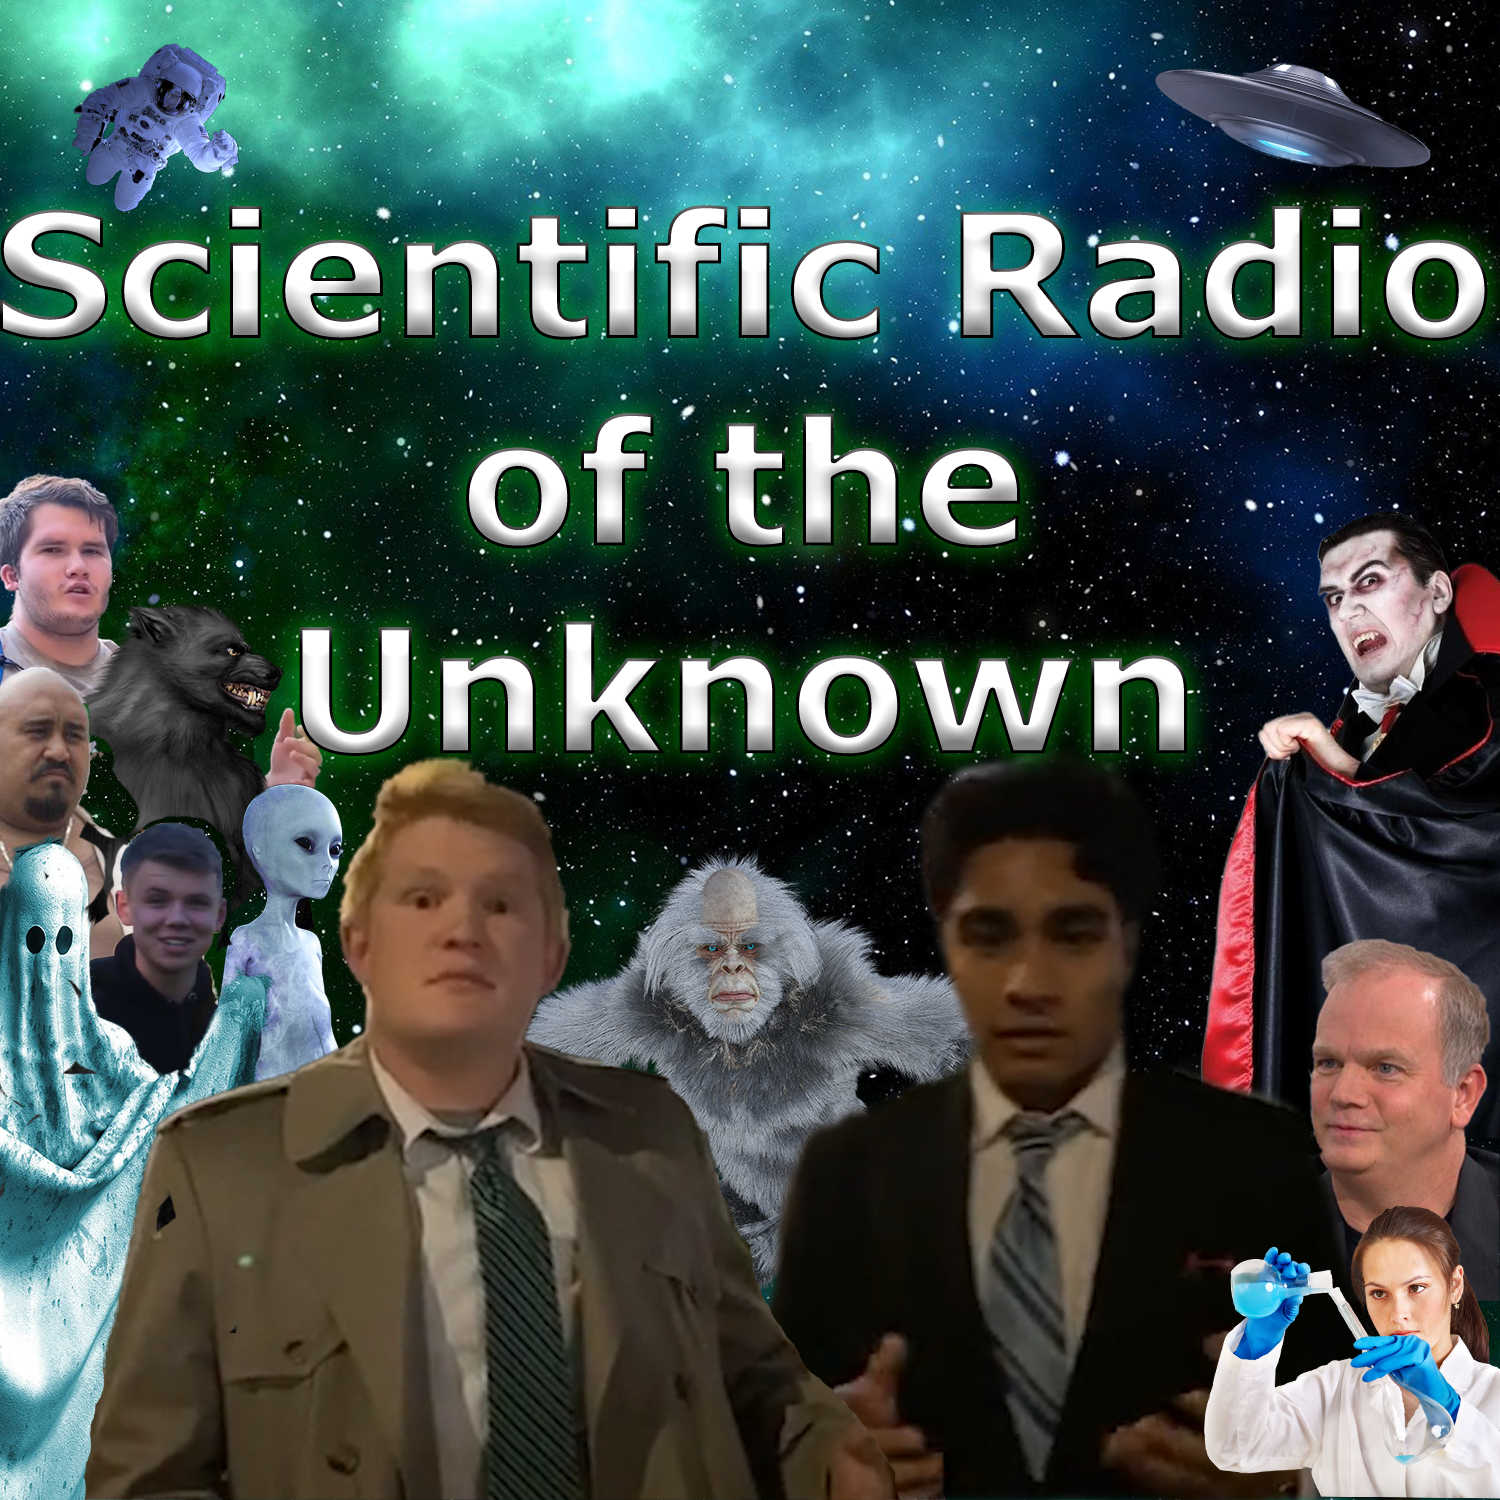 Scientific Radio of the Unknown